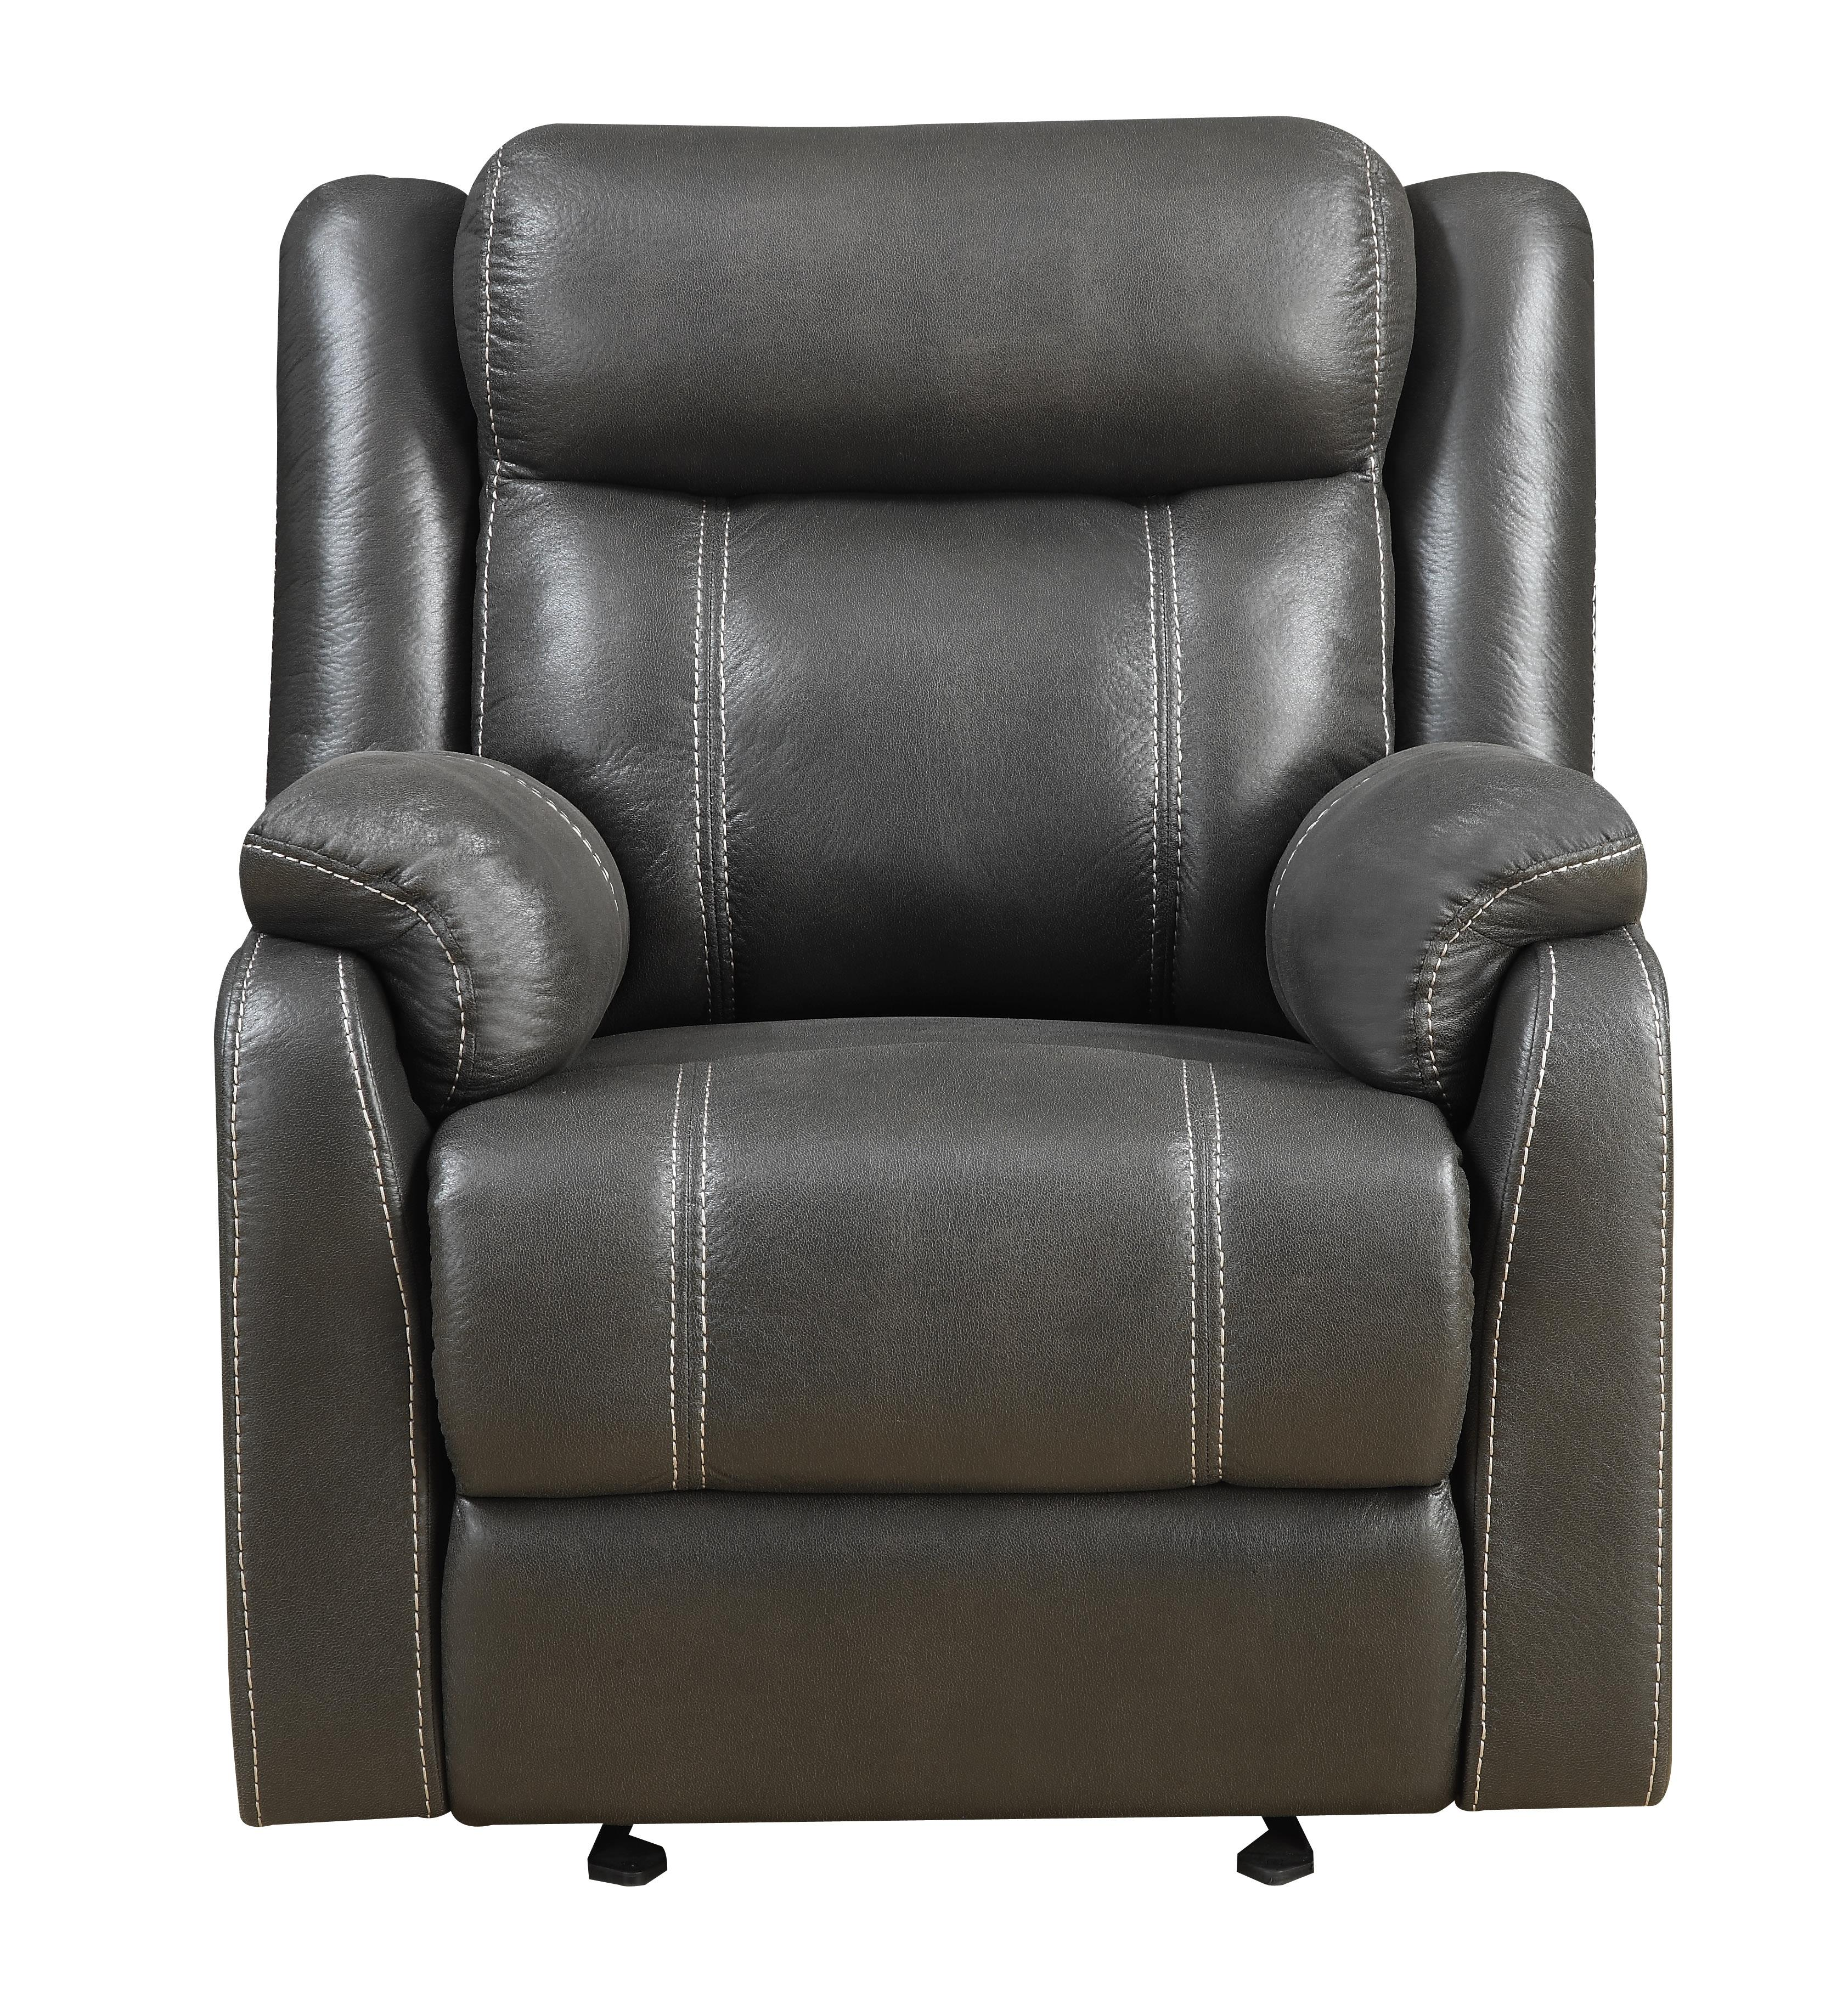 Domino-US Gliding Recliner Chair by Klaussner International at Rooms for Less